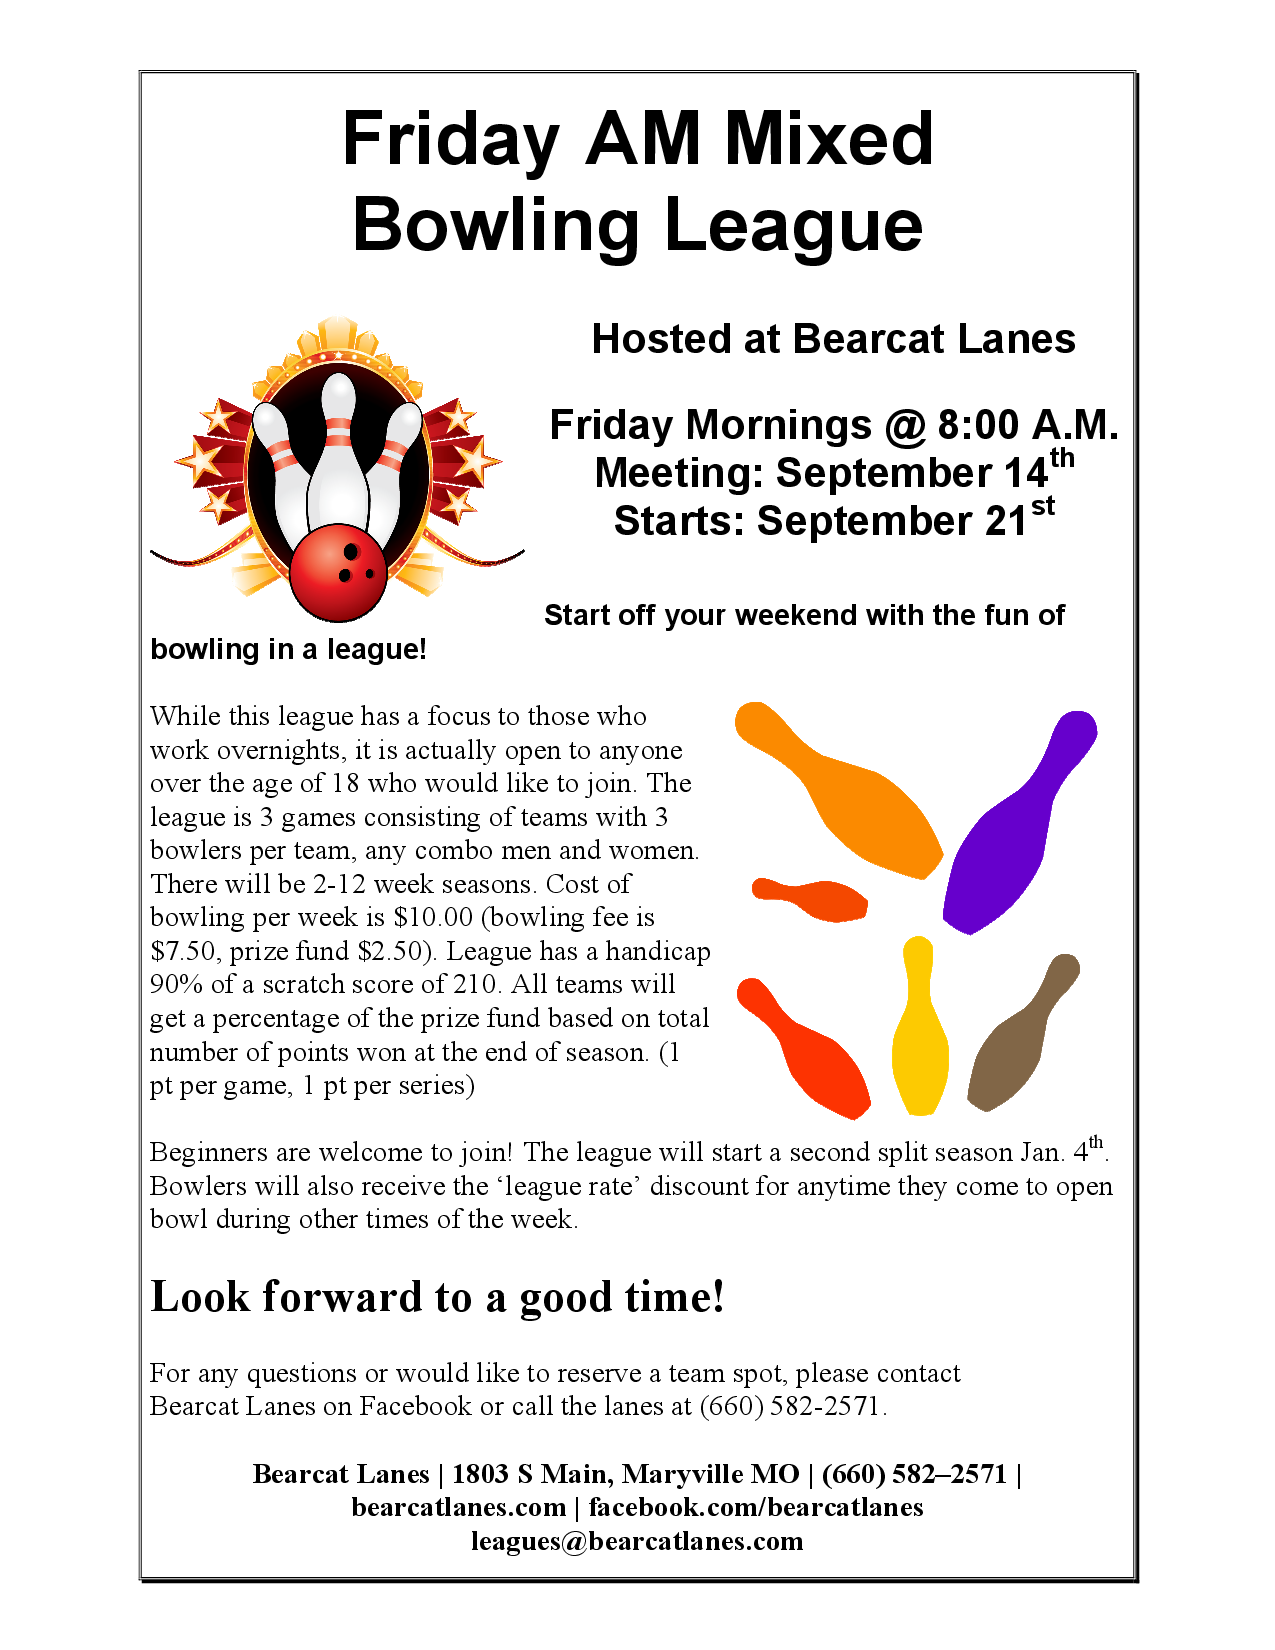 Friday AM Mixed League